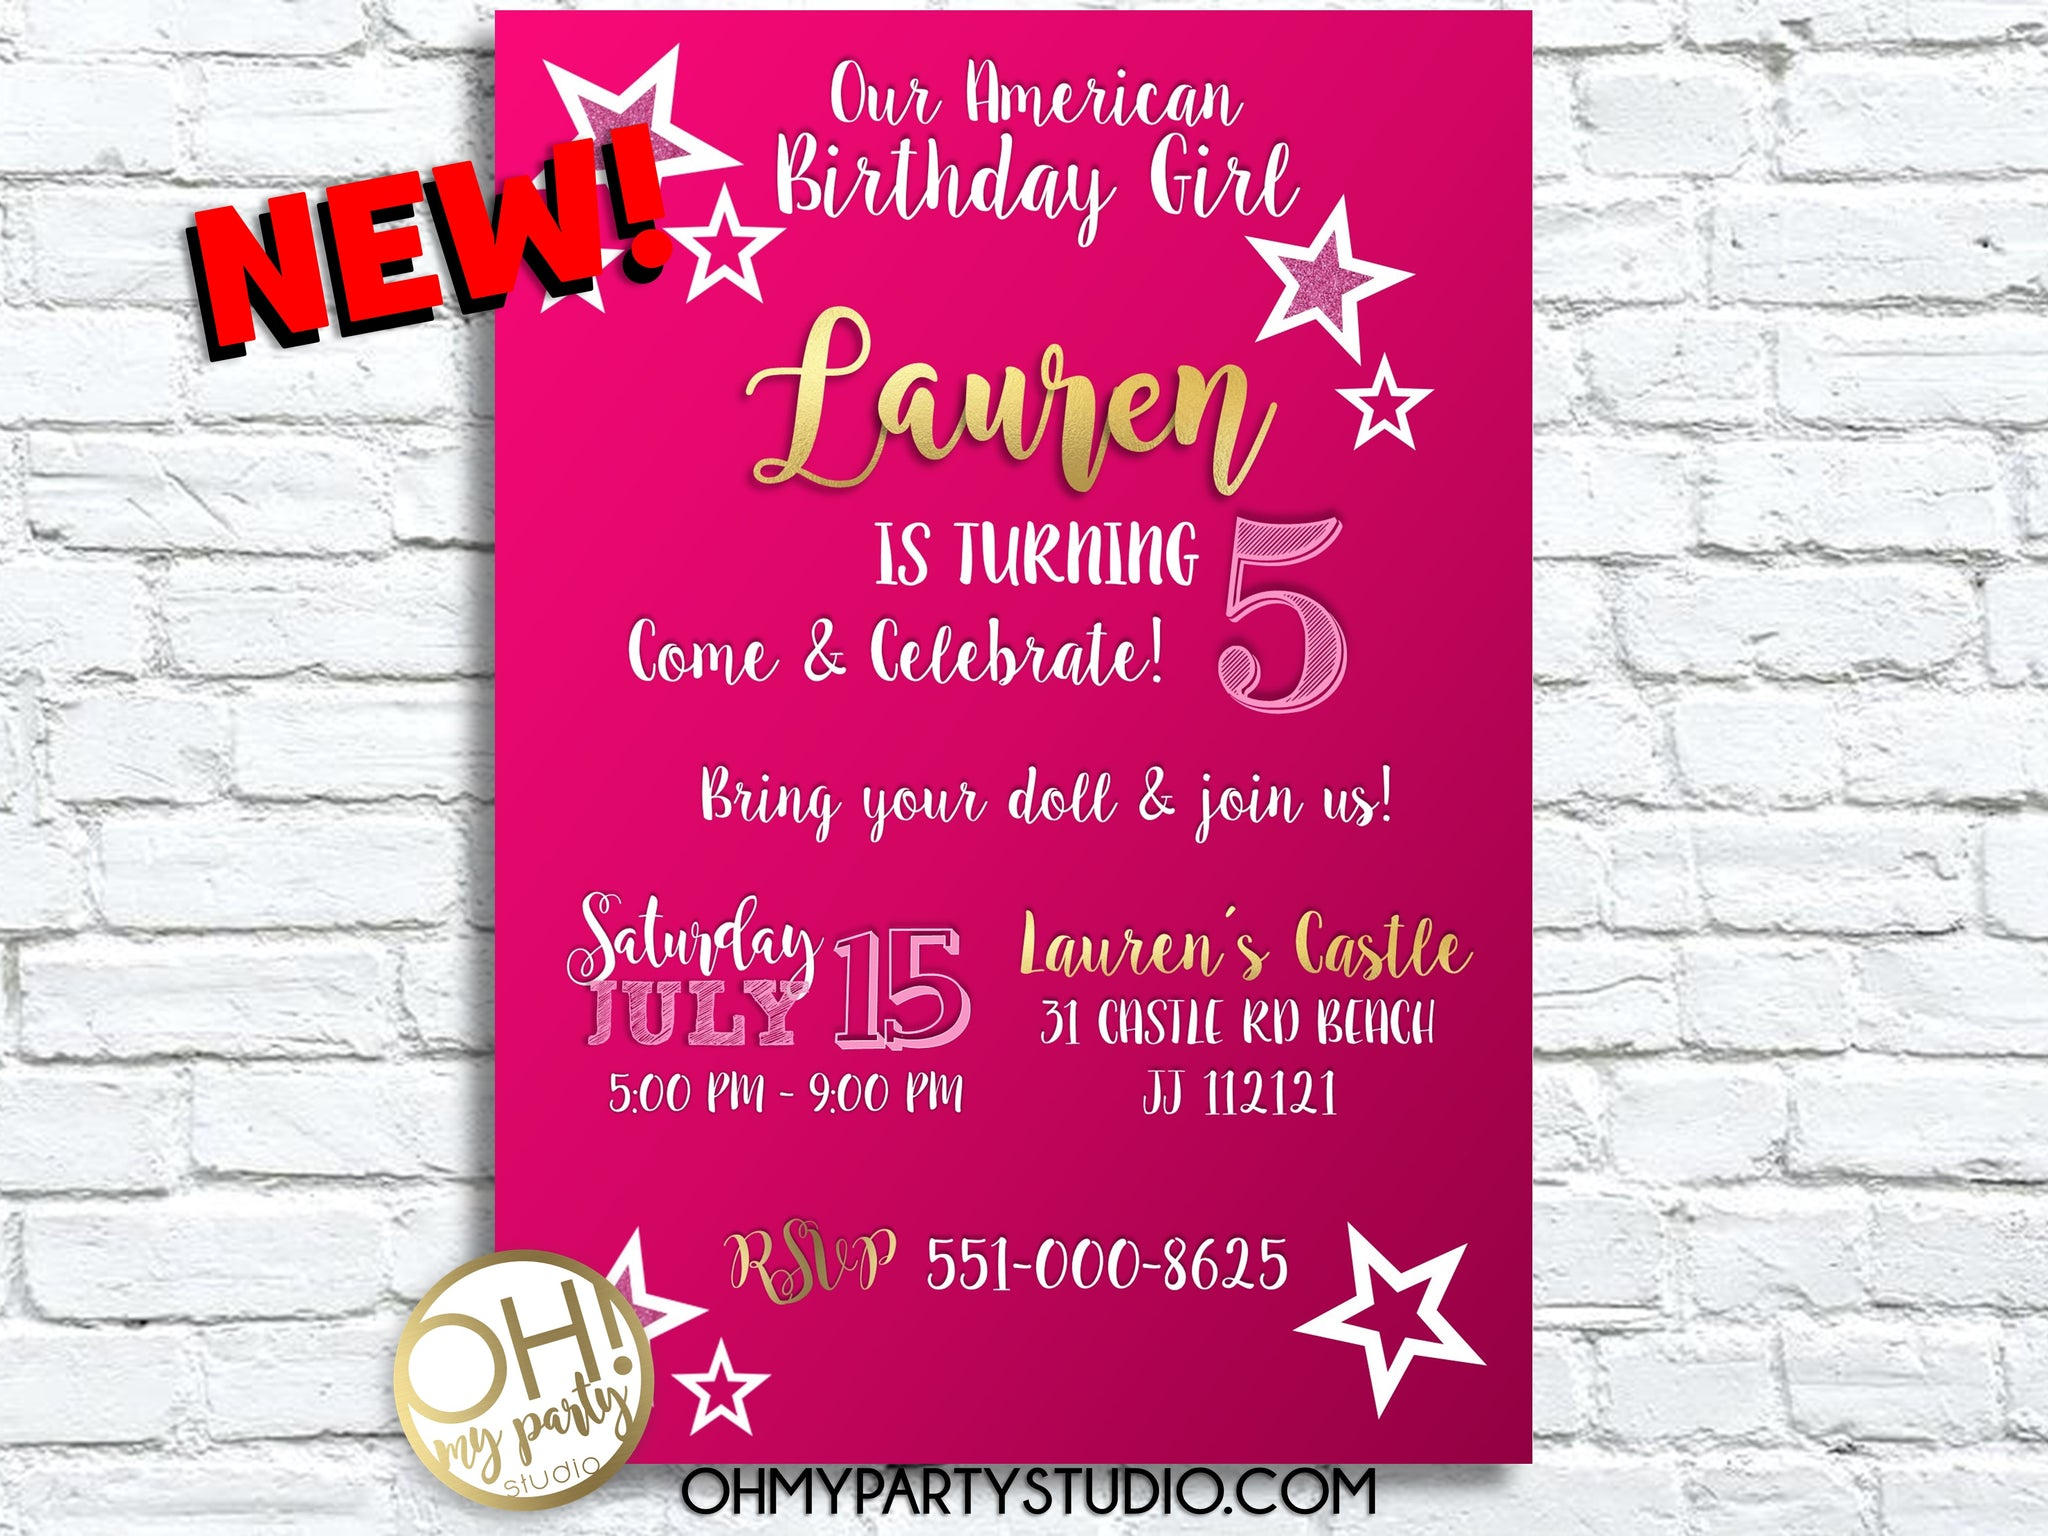 AMERICAN GIRL BIRTHDAY PARTY, AMERICAN GIRL BIRTHDAY INVITATION, AMERICAN GIRL INVITE, AMERICAN GIRL DIGITAL INVITATION, AMERICAN GIRL INVITATION, AMERICAN GIRL INVITATIONS, AMERICAN GIRL PARTY IDEAS, AMERICAN GIRL PARTY, AMERICAN GIRL BIRTHDAY